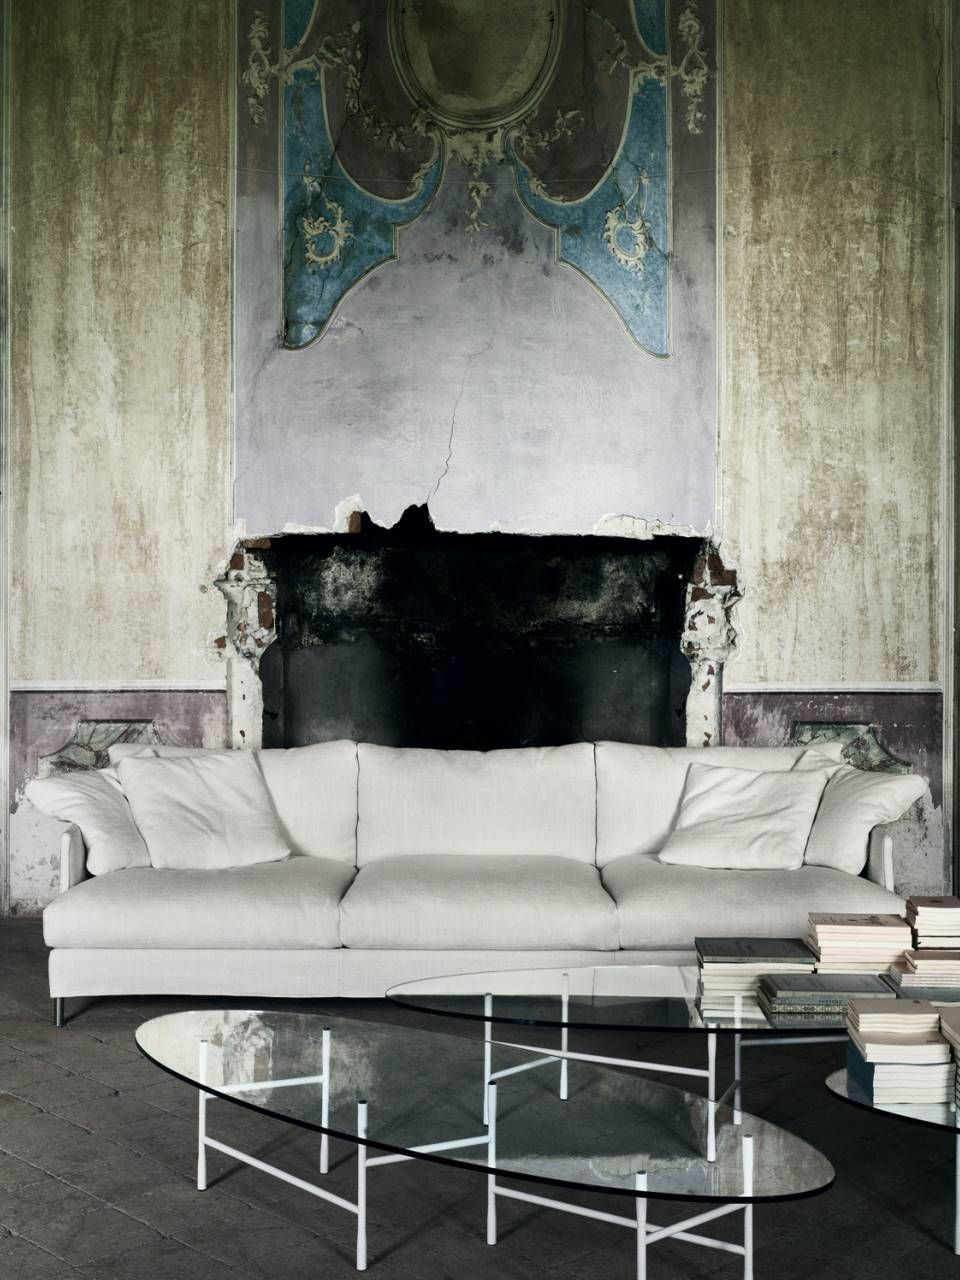 Piero Lissoni Modular Sofa Chemise Xl Piero Lissoni Living Divani Sofa Contemporary Sofa